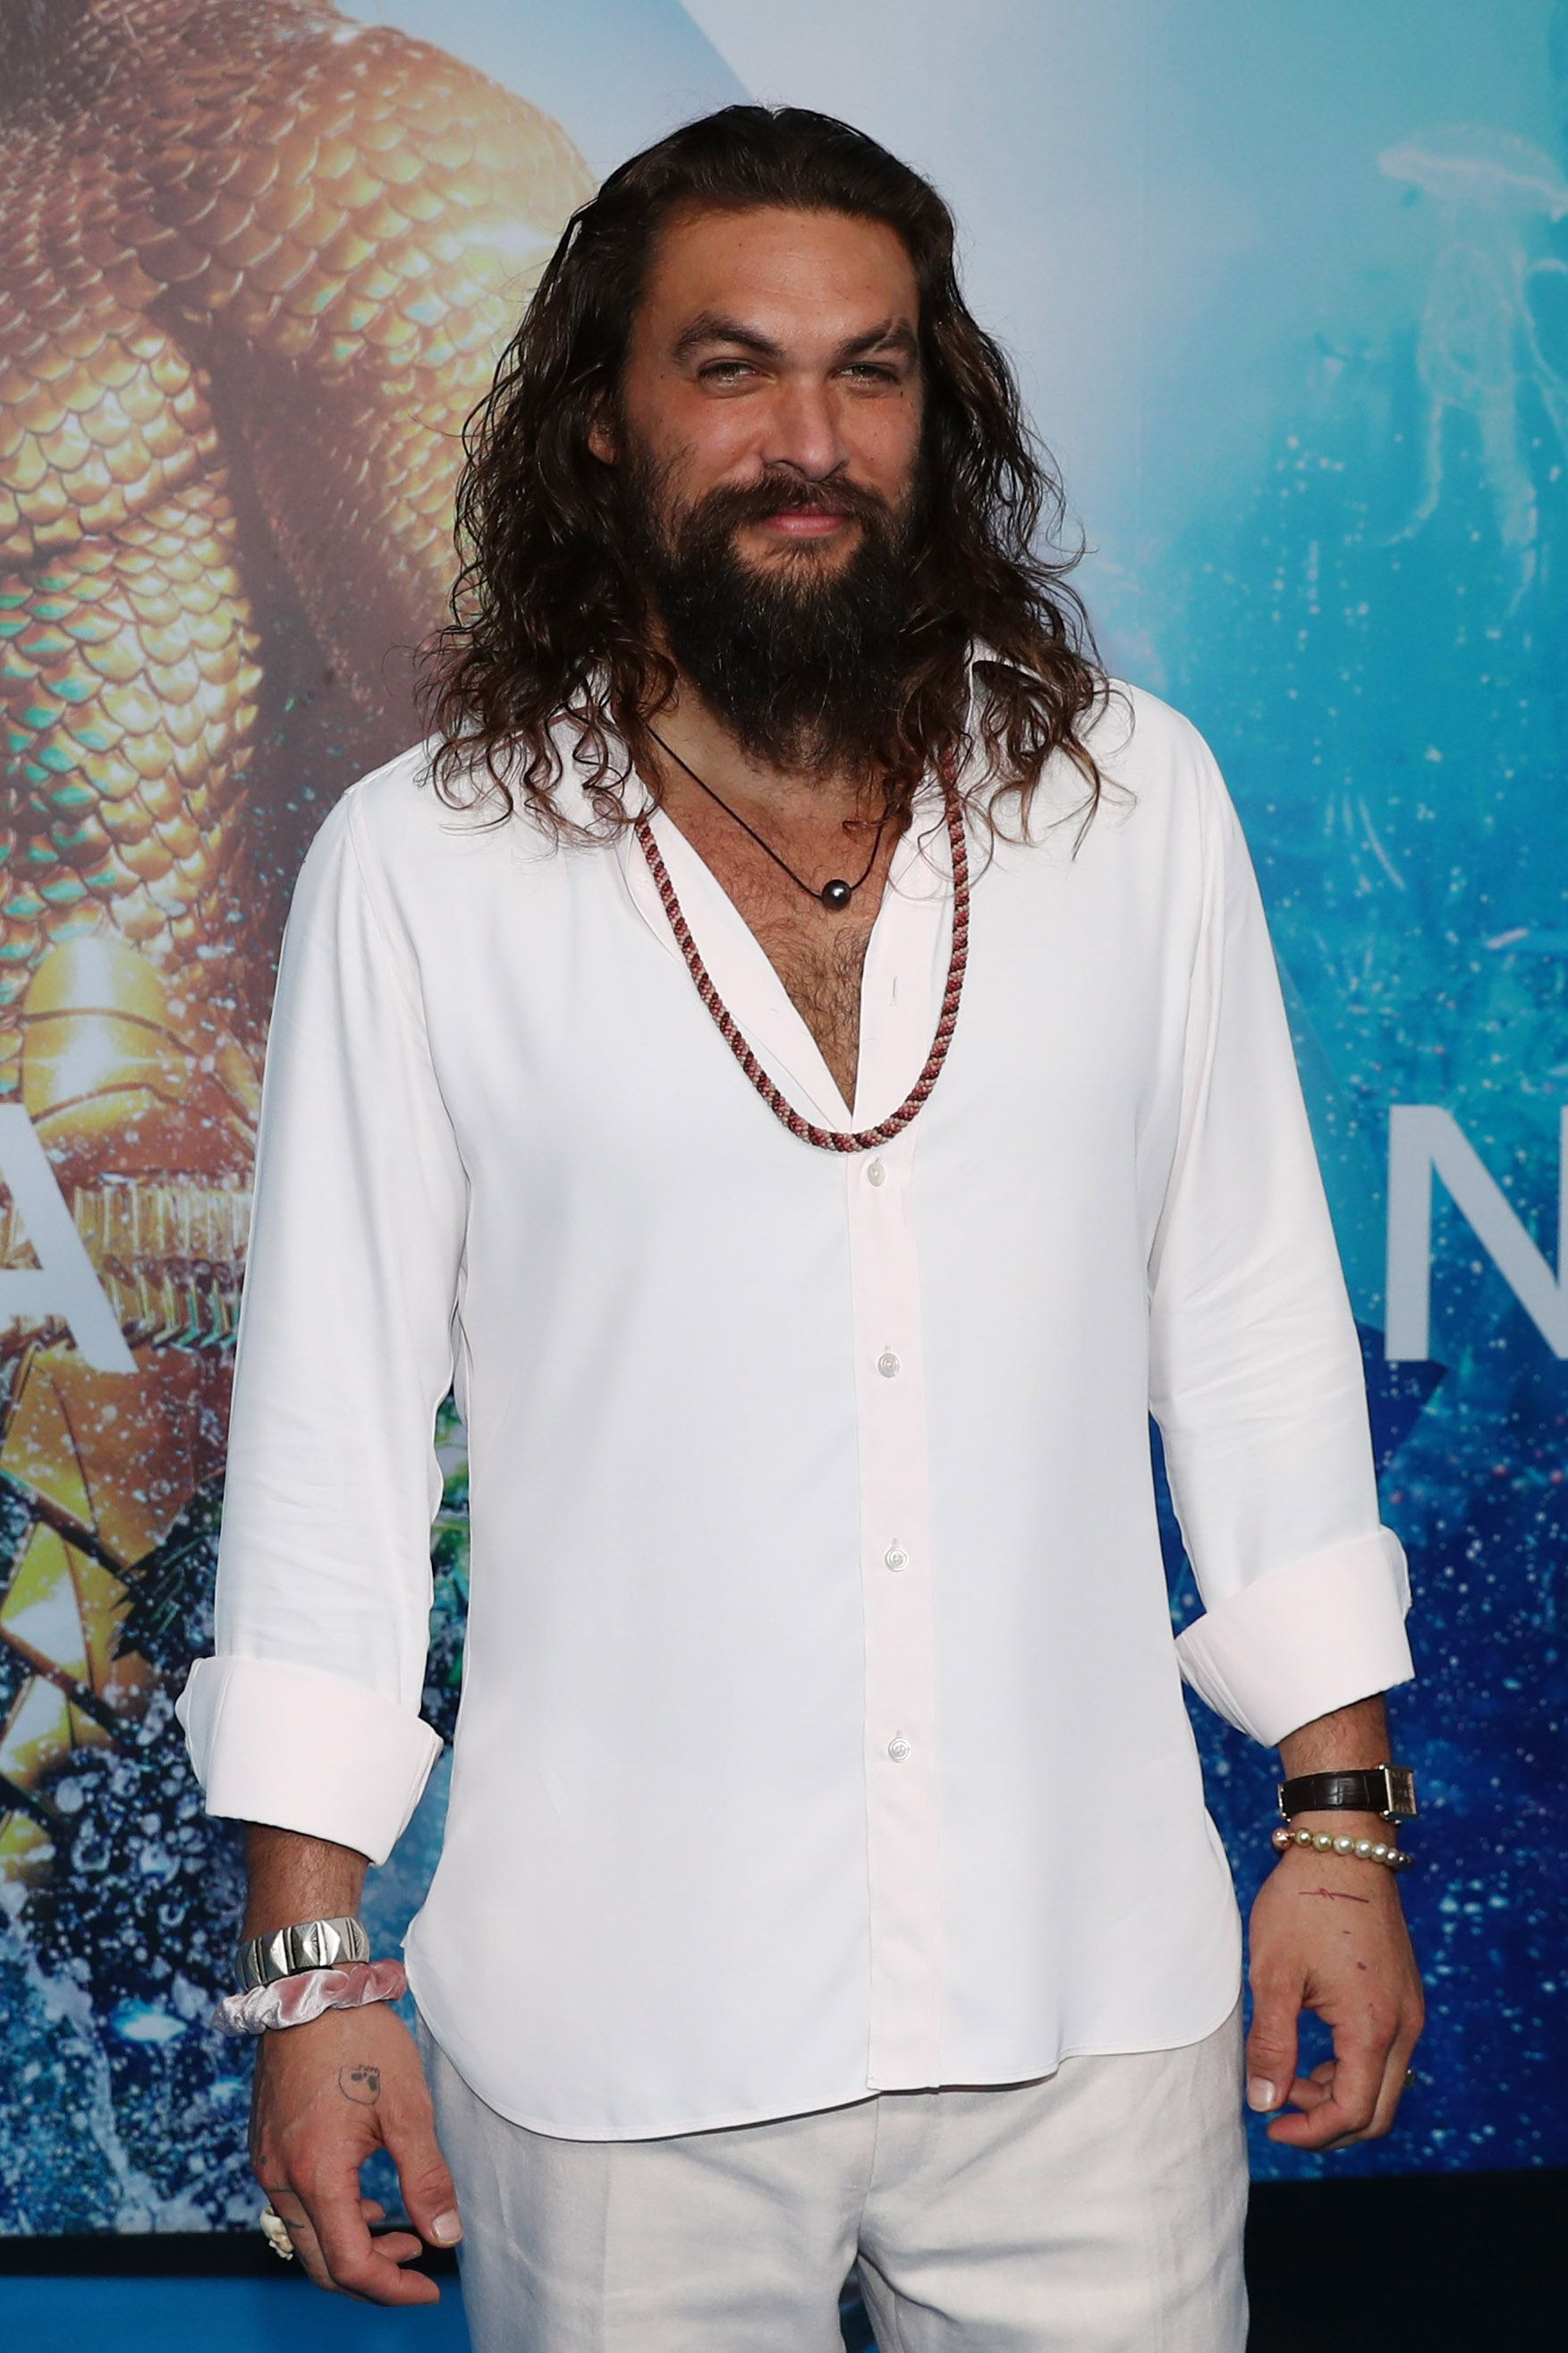 Jason Momoa poses at the Australian premiere of Aquaman on December 18, 2018 in Gold Coast, Australia. | Photo: Getty Images